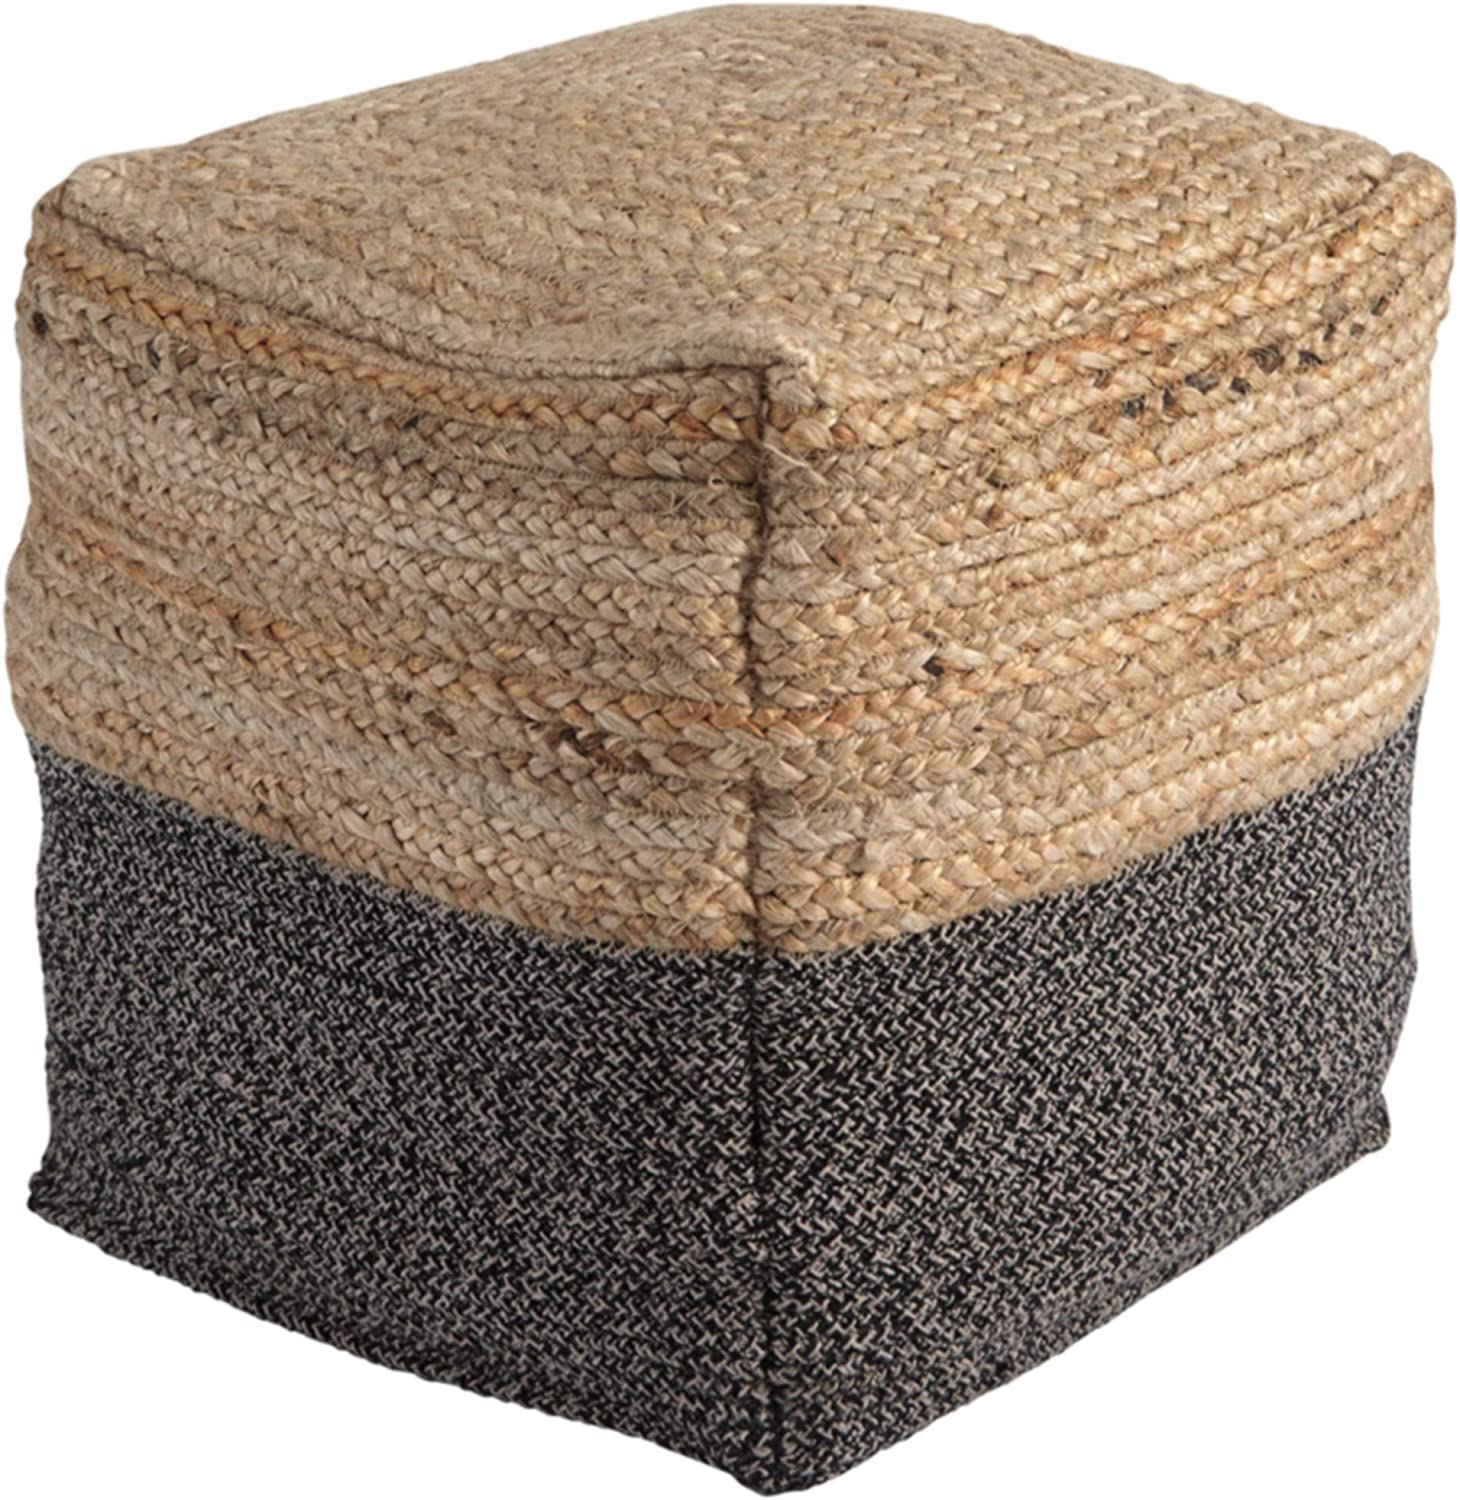 Ashley Furniture Signature Design - Sweed Valley Pouf - Comfortable Pouf & Ottoman - Casual - Natural/Black